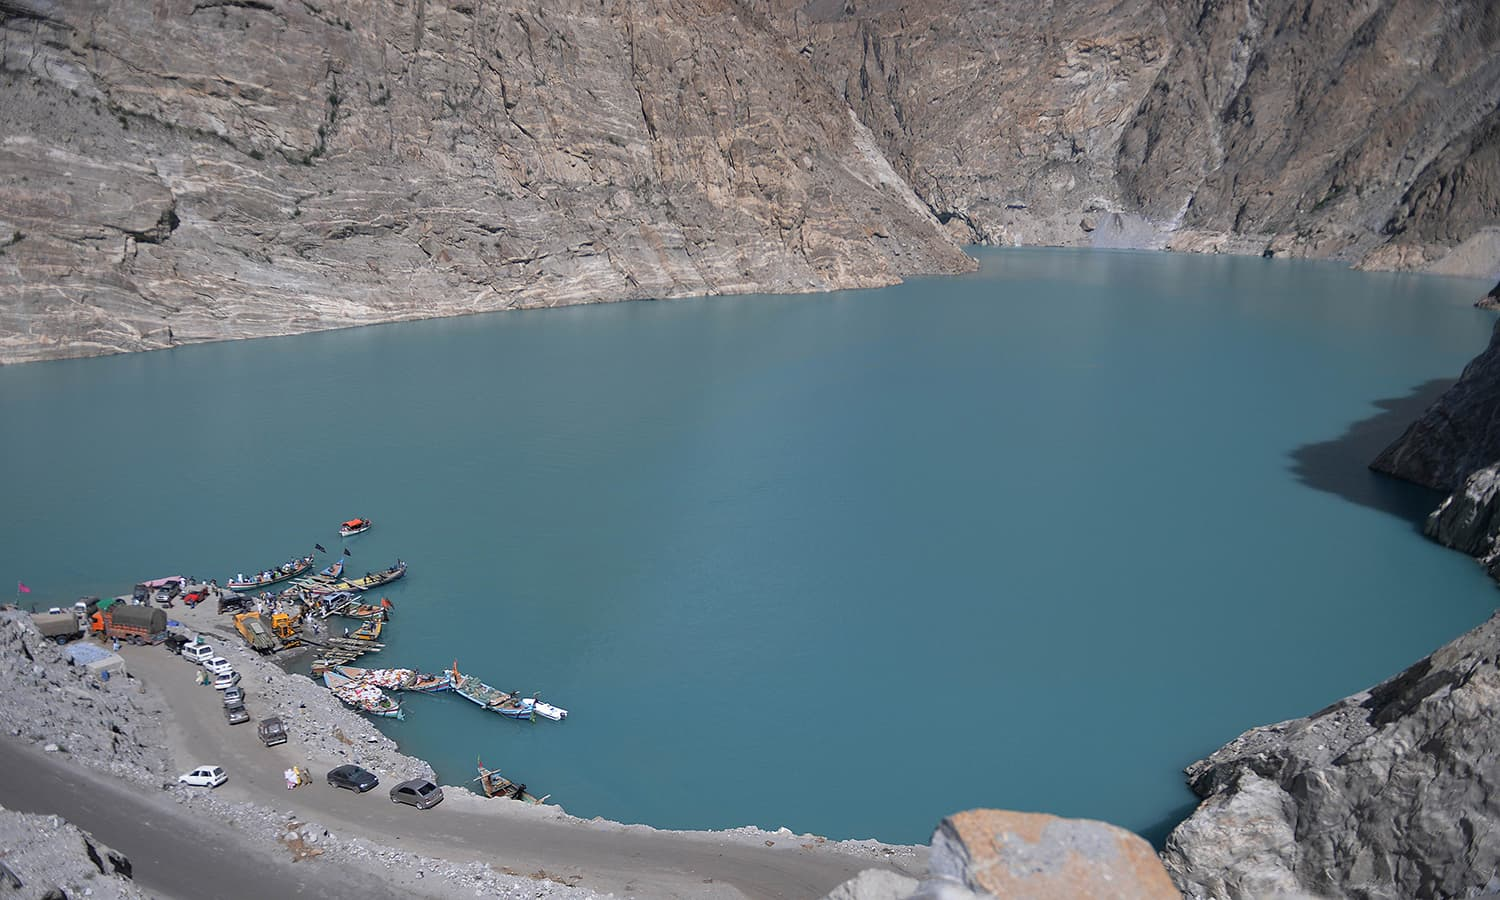 Pakistani residents board boats used to cross Attabad Lake, which was formed following a landslide in January 2010, in Pakistan's Gojal Valley. — AFP